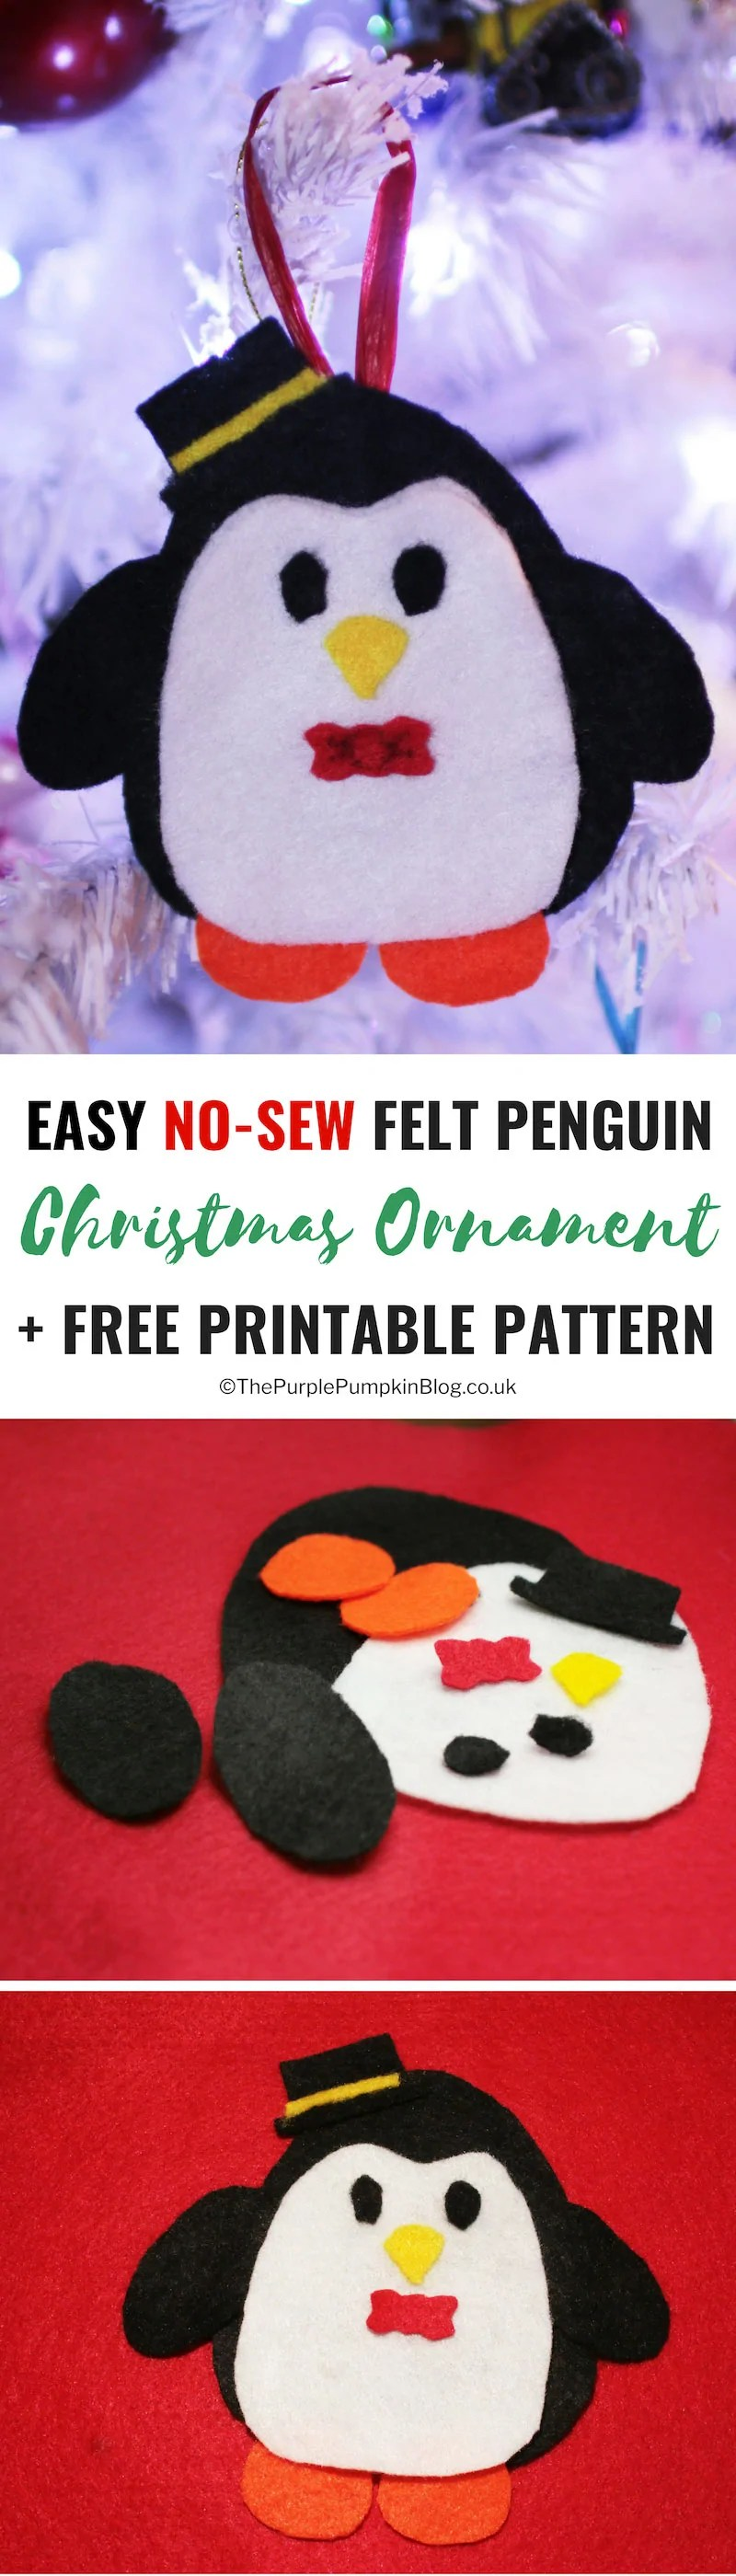 picture regarding Penguin Pattern Printable referred to as Very simple No-Sew Felt Xmas Ornament Penguin + Absolutely free Printable